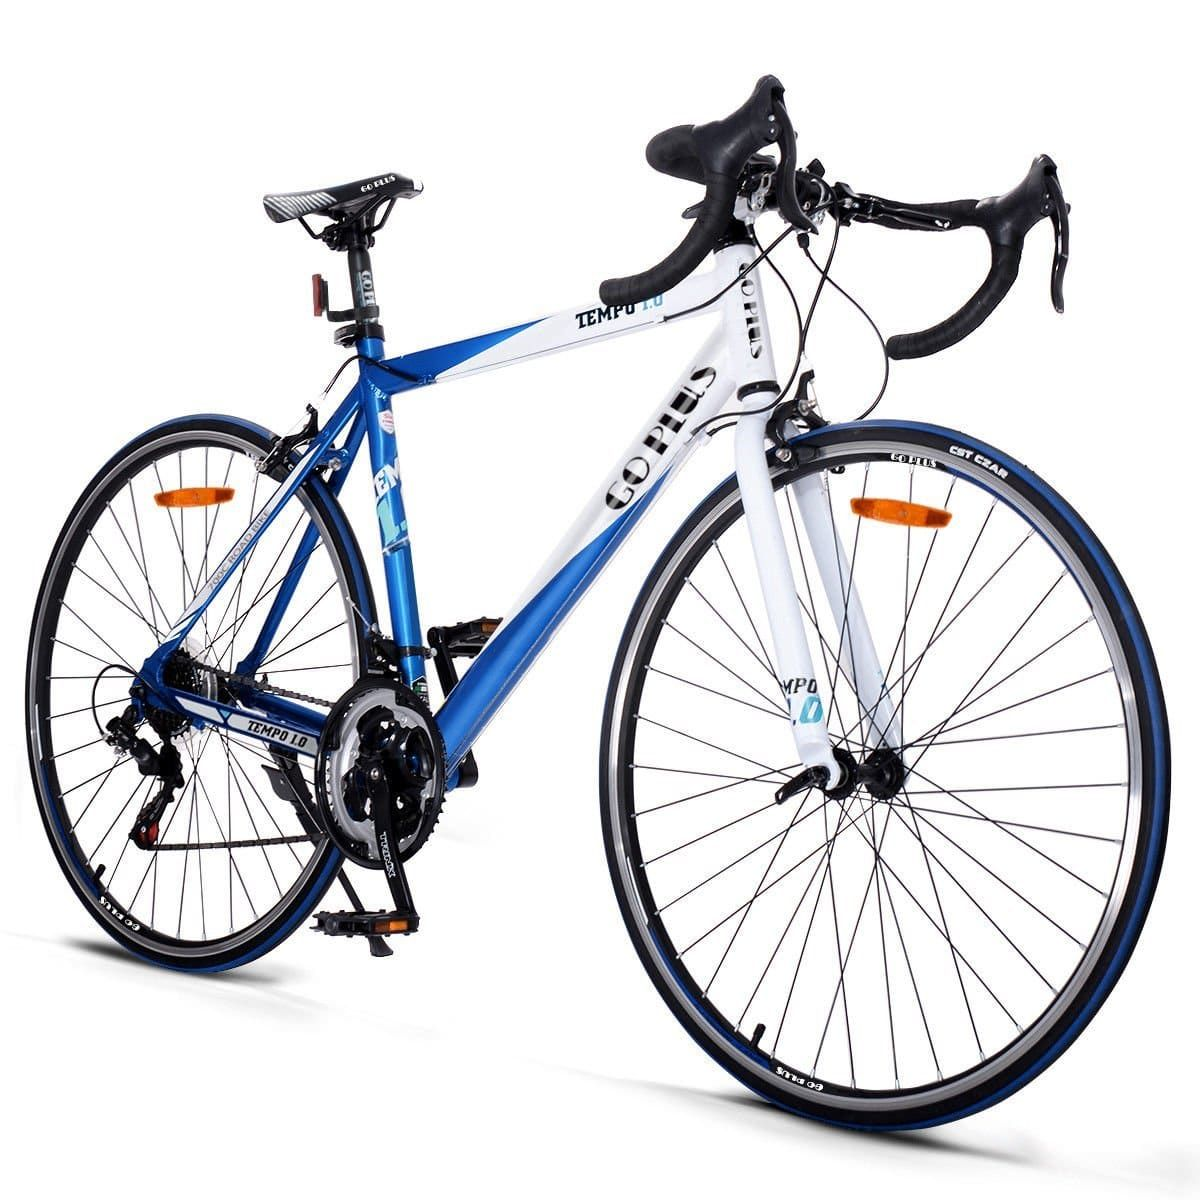 Top 10 Best Road Bikes In 2020 Reviews Things You Need To Know